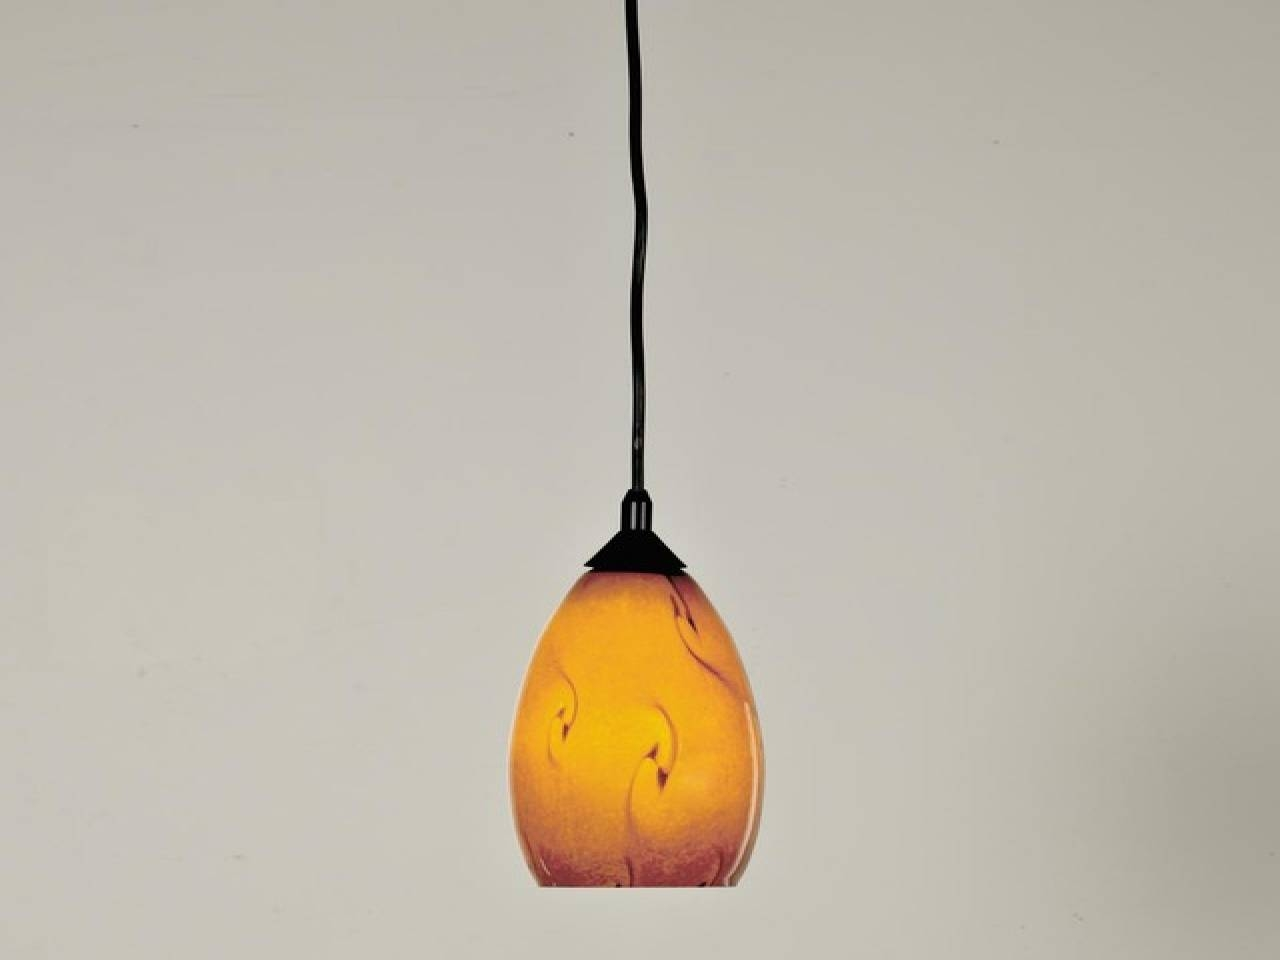 Stunning Murano Glass Pendant Lights 29 For Your Pendant Light in Murano Glass Lights Pendants (Image 14 of 15)